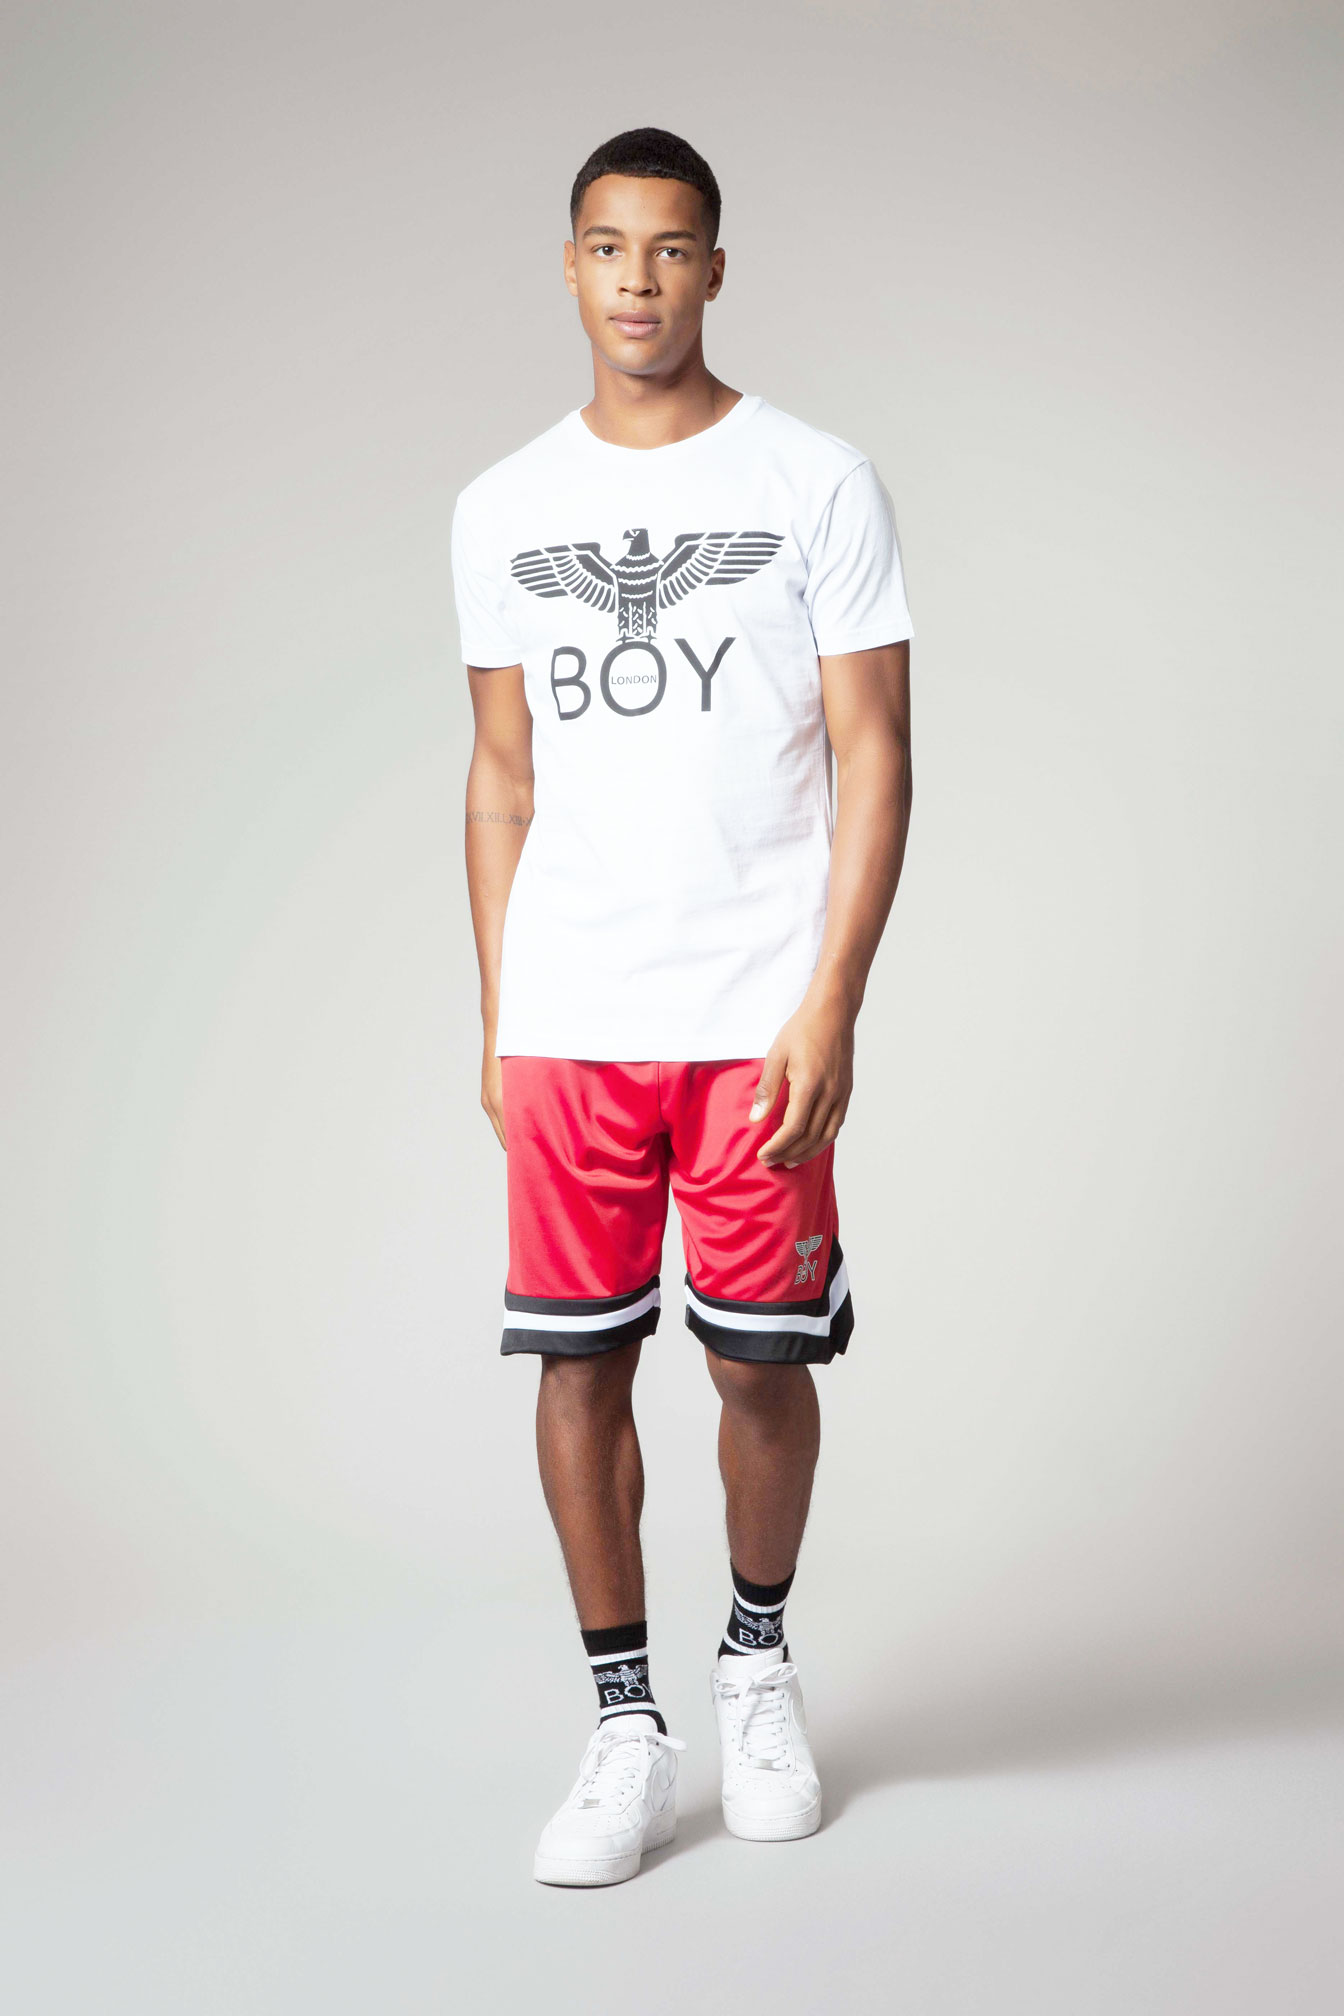 T-SHIRT - BLU6501 - BOY LONDON